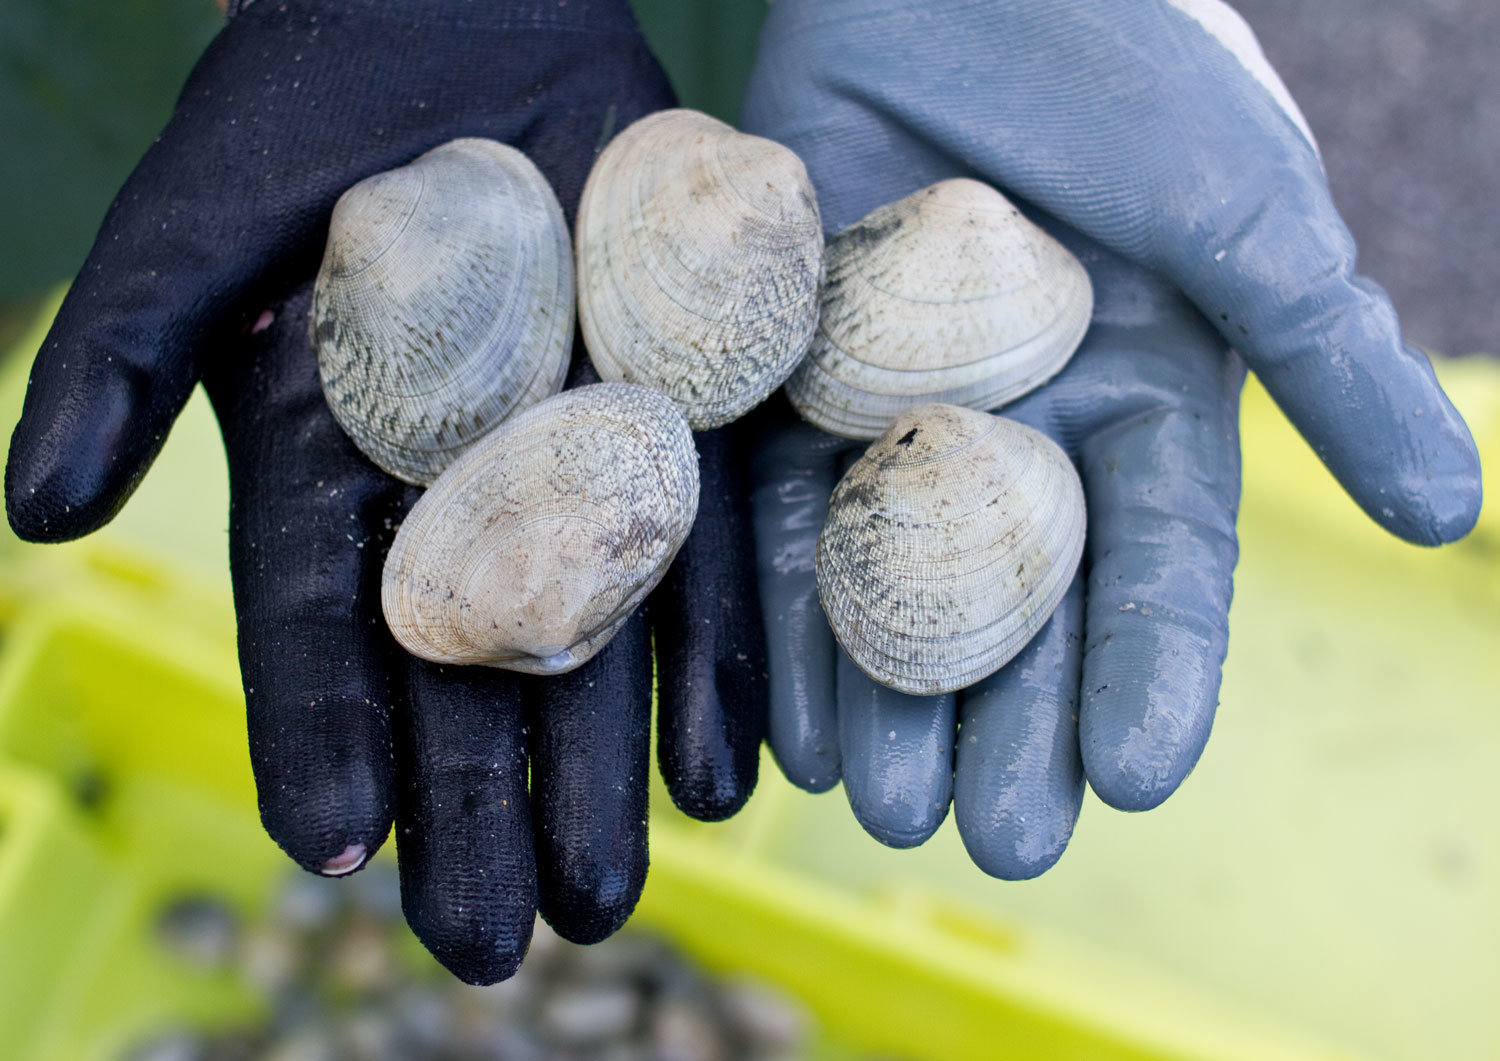 Winter 2012/2013, Cambados, Spain. Good size clams proudly displayed over a clam digger's hand, Mar Cuervo, Audiovisual Library of the European Commission, CC BY-NC-ND